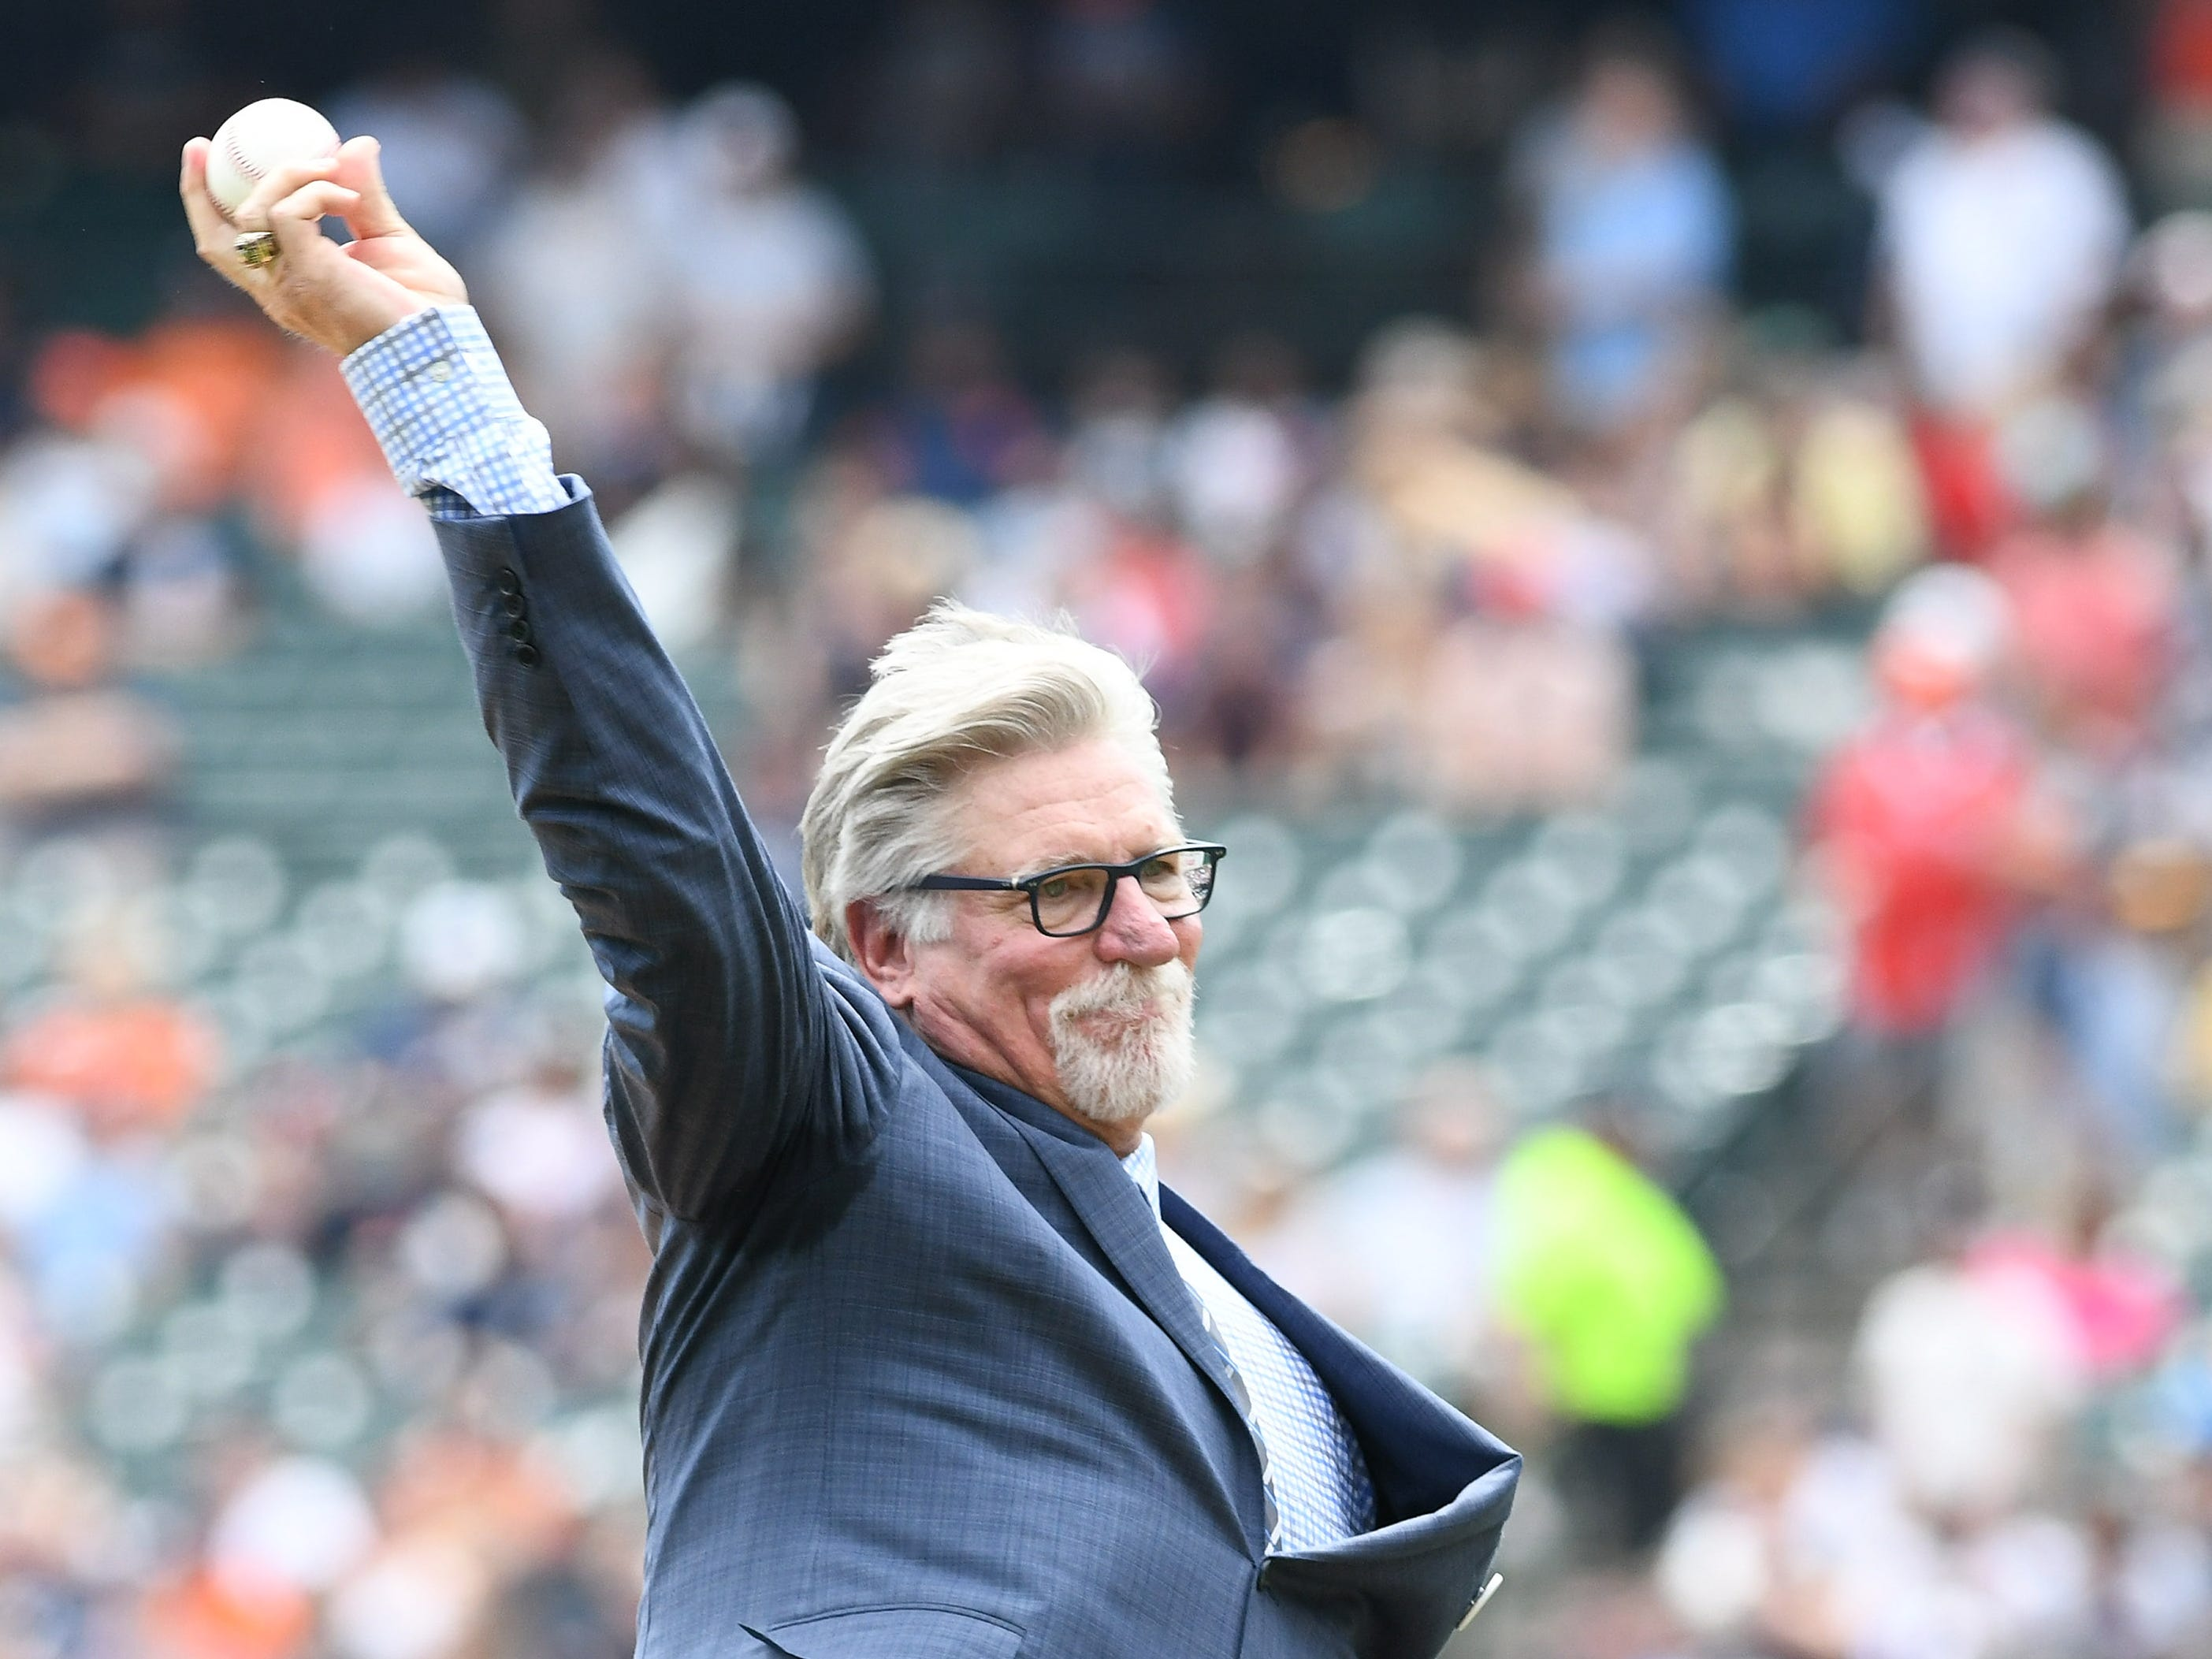 Former Tigers pitcher and Hall of Famer Jack Morris throws out the ceremonial first pitch before the game.